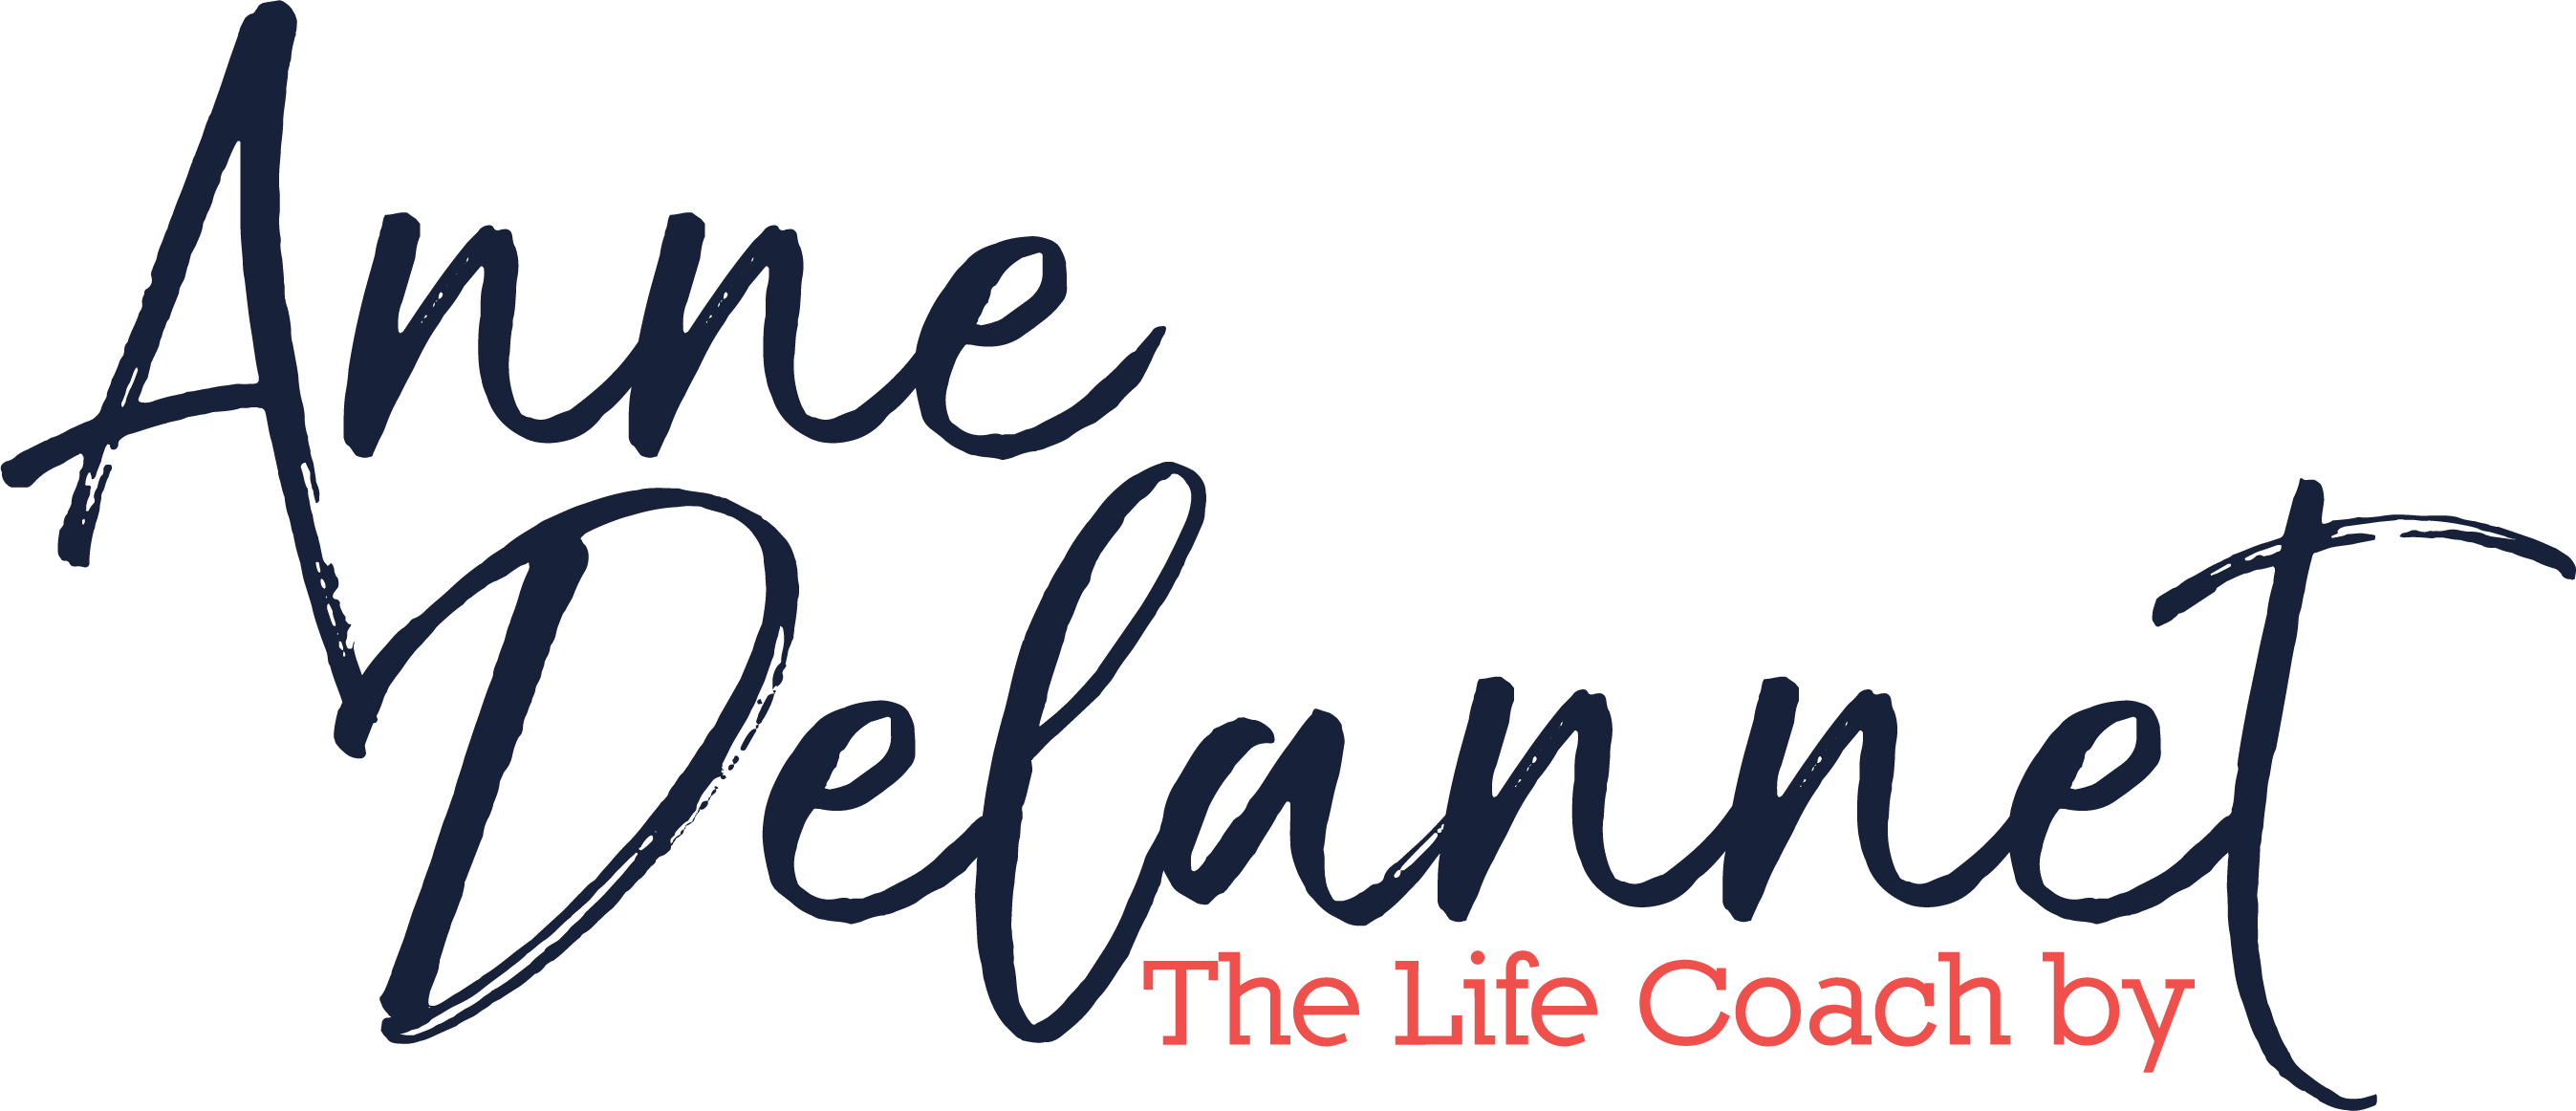 The Life Coach by Anne Delannet